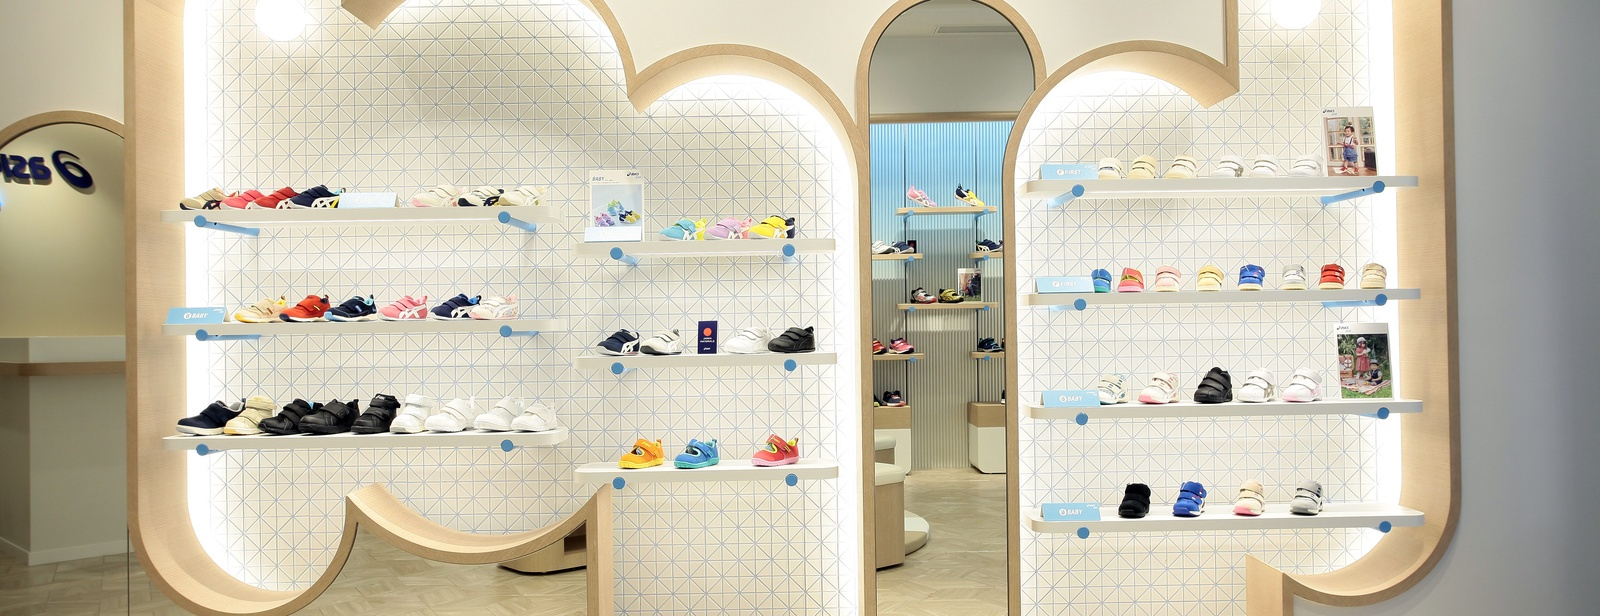 search for authentic reasonable price fashionable and attractive package ASICS KIDS GINZA FLAGSHIP STORE | ASICS Japan